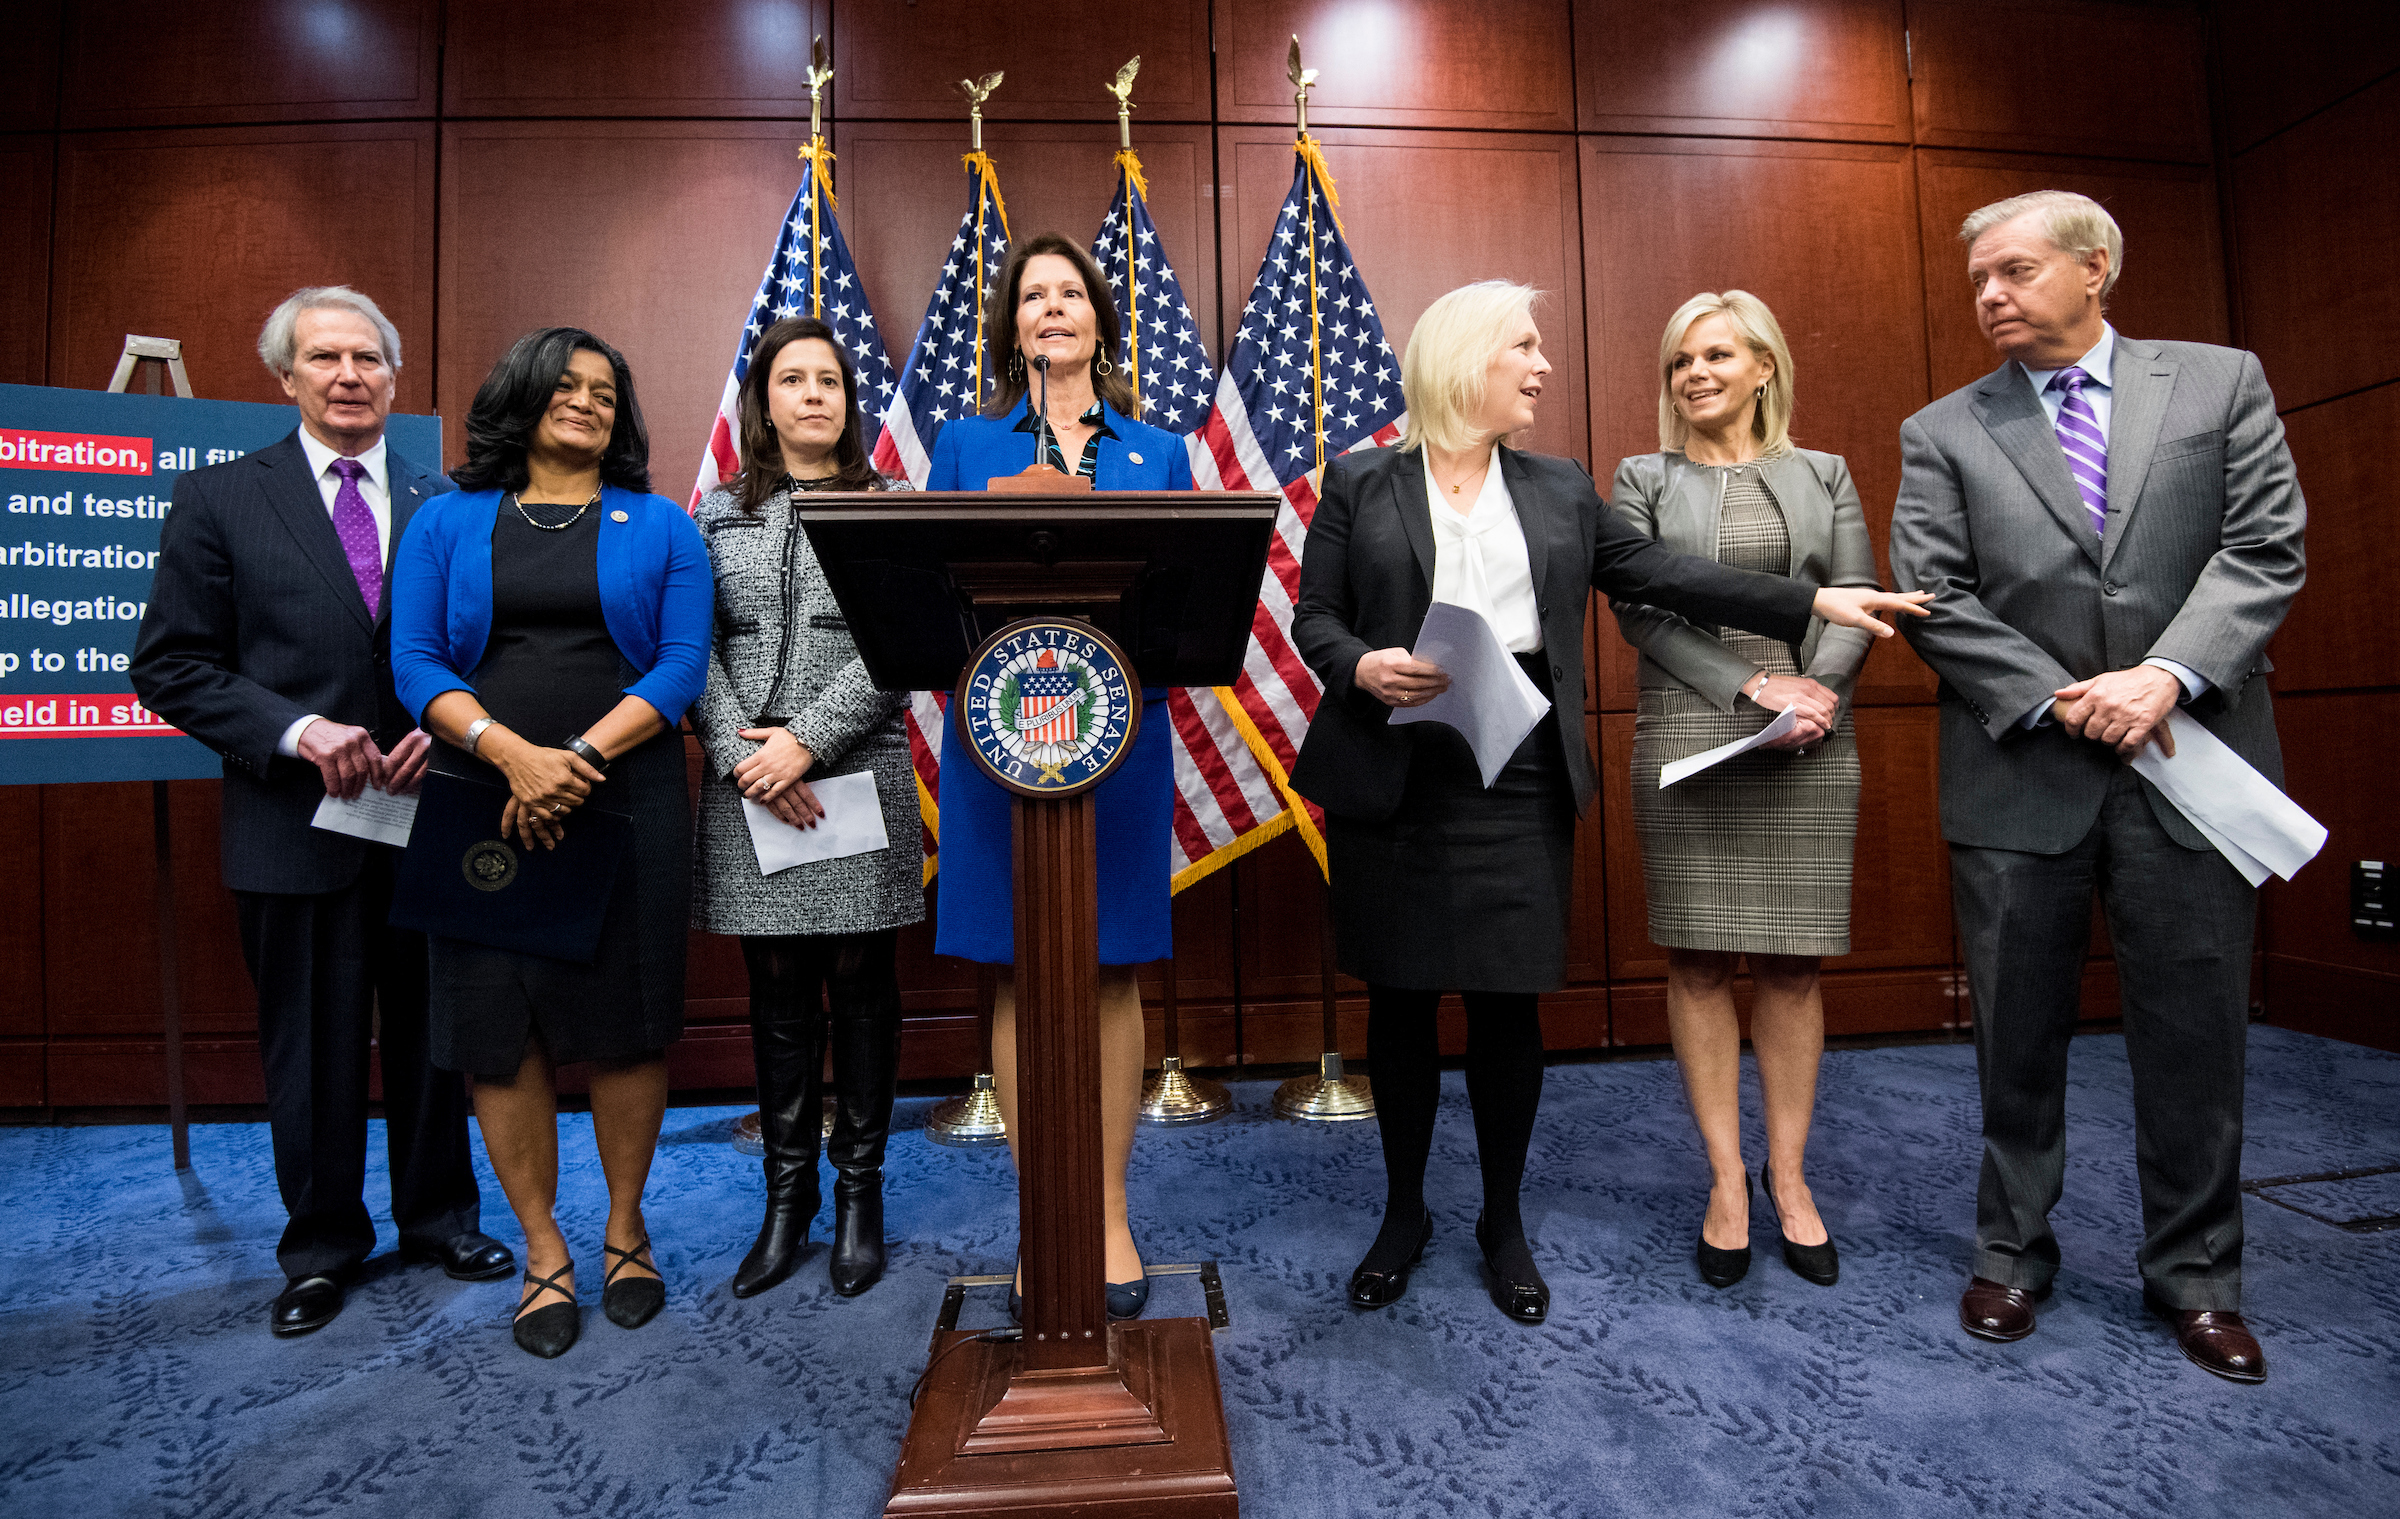 Sen. Kirsten Gillibrand, D-N.Y., third from right, joined other senators Wednesday in calling for Franken's resignation. She also appear that day with, from left, Reps. Walter Jones, R-N.C., Pramila Jayapal, D-Wash., and Cheri Bustos, D-Ill., Gretchen Carlson, and Sen. Lindsey Graham, R-S.C., on a new bipartisan bill to prevent sexual harassment and discrimination in the workplace. (Bill Clark/CQ Roll Call)